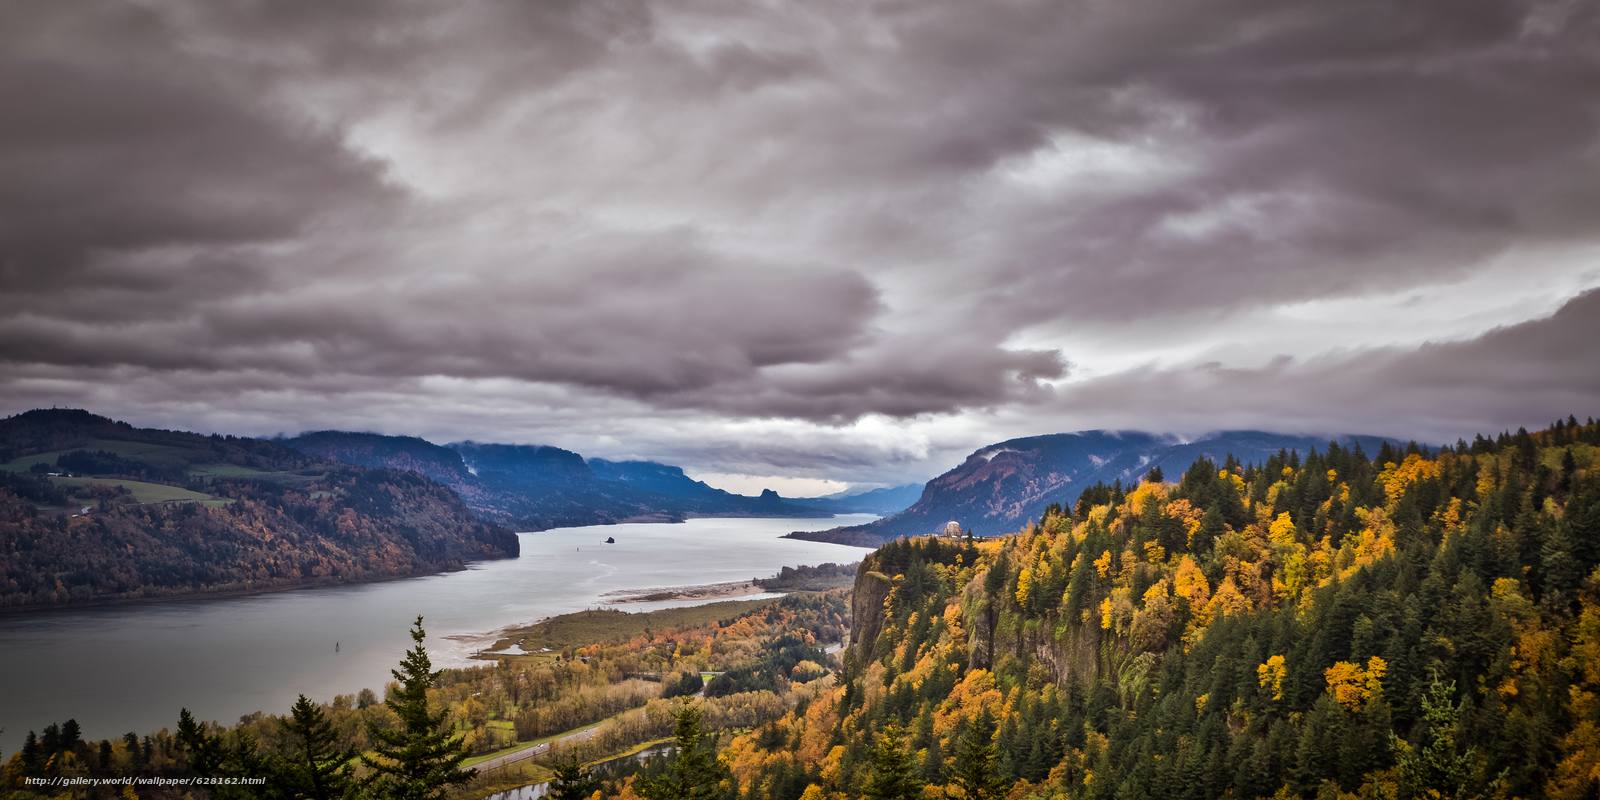 Download wallpaper Vista House, Crown Point, in Columbia River Gorge ...